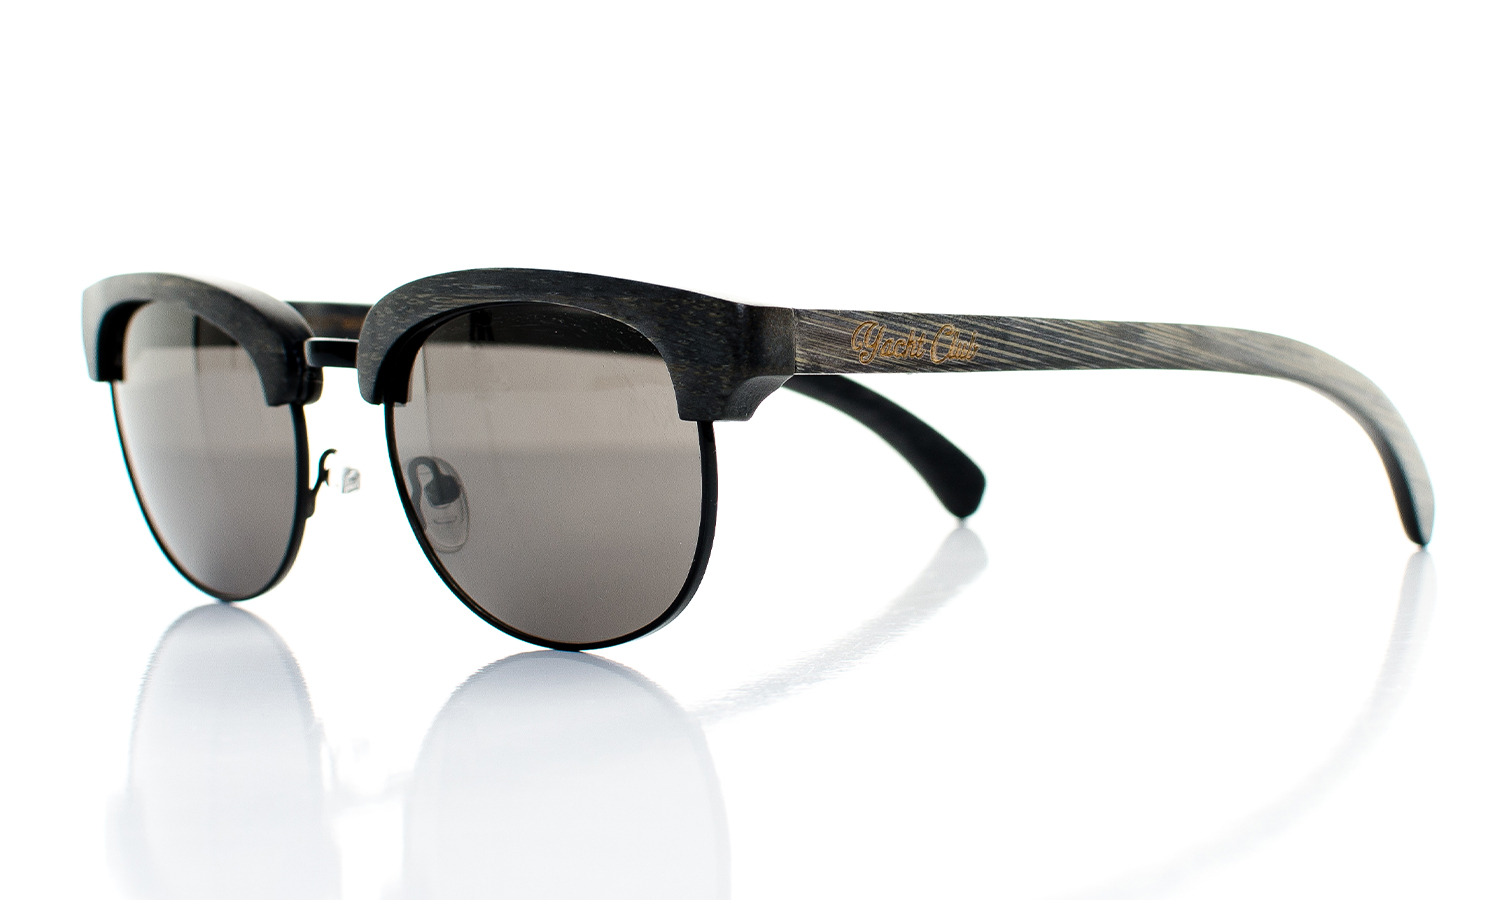 YachtMaster Handcrafted Wooden Eyewear Black Bamboo Wood - Side View